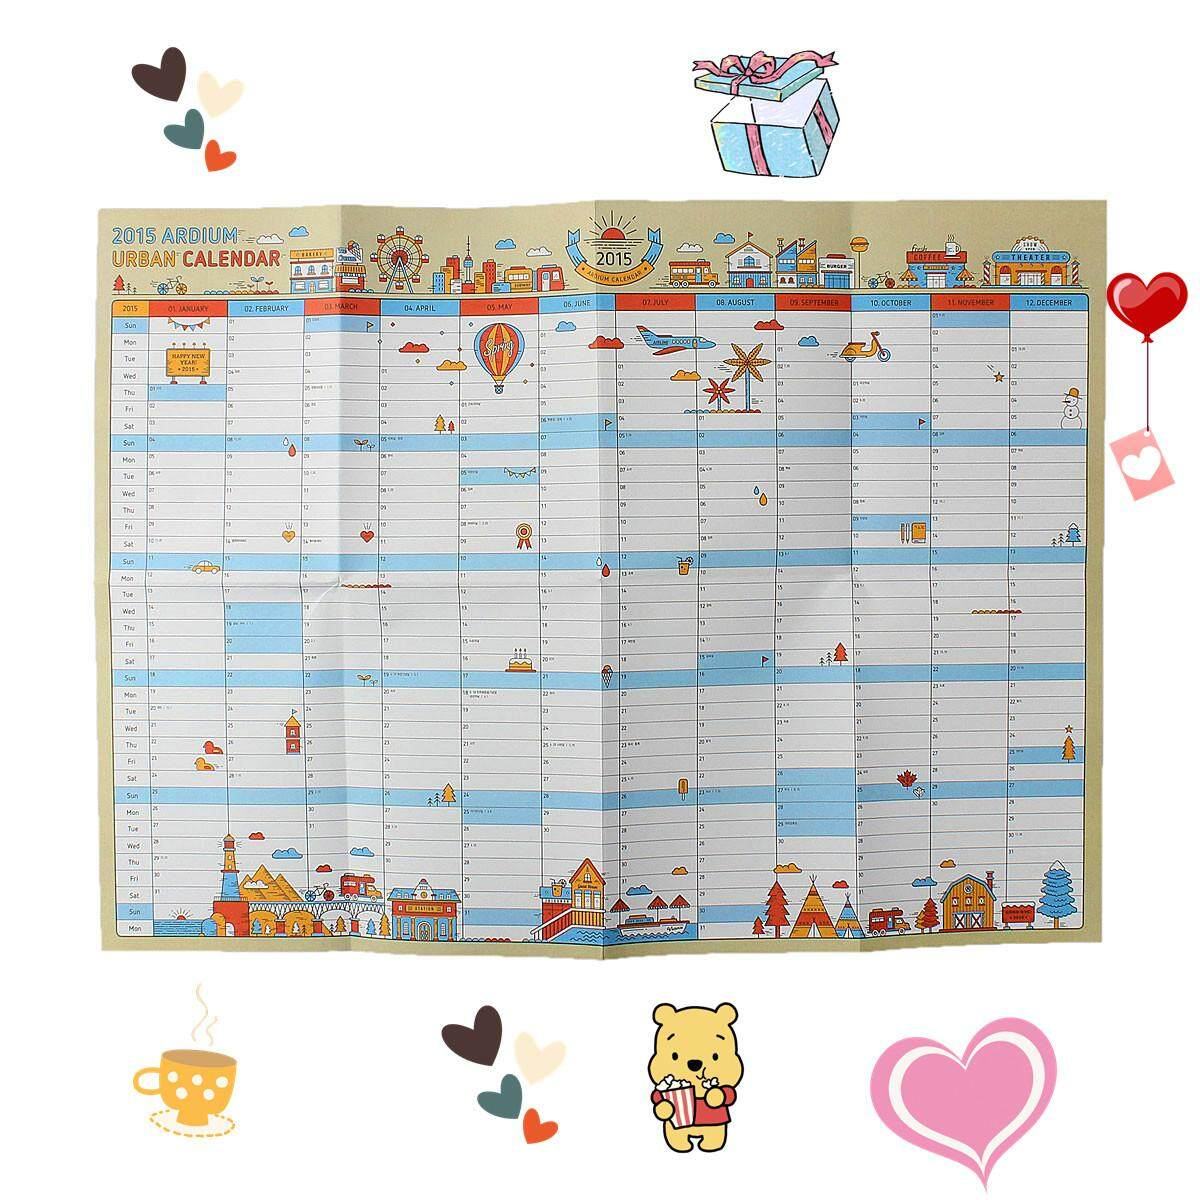 Poster Style Wall Calendar Planner Schedule Journal Agenda Paper Table By Autoleader.